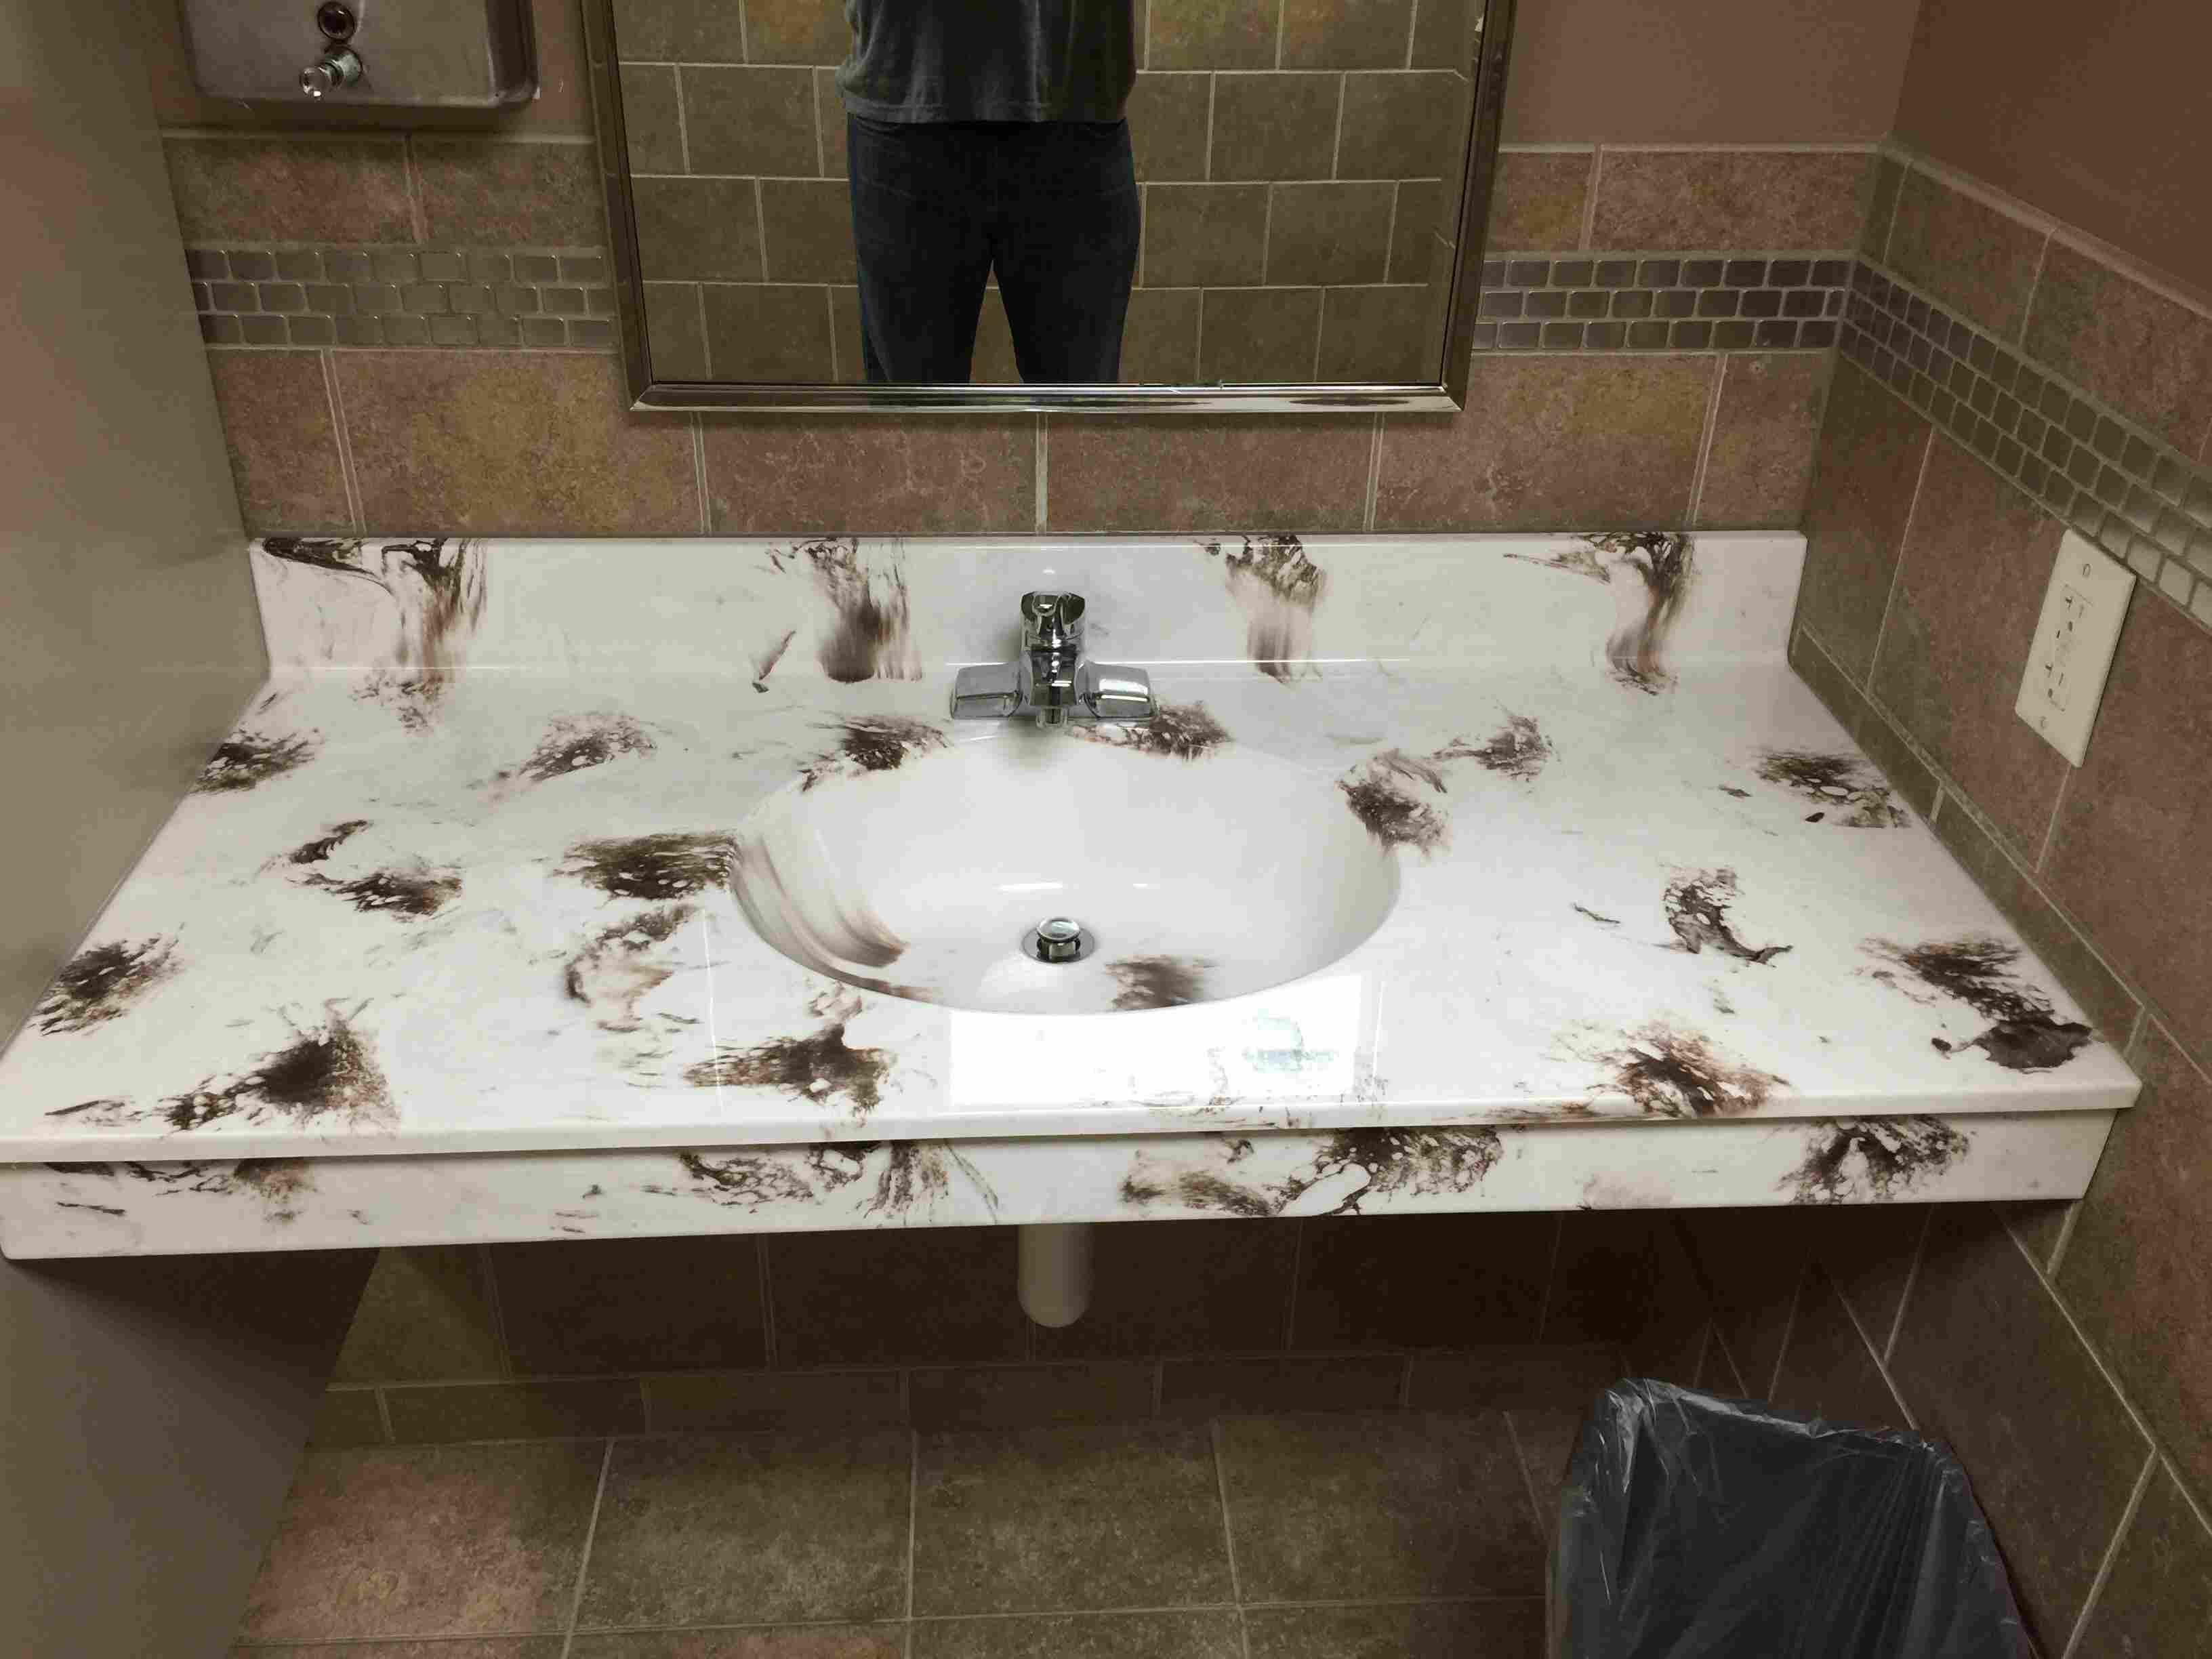 9 Bathroom Design Fails You Have To See To Believe